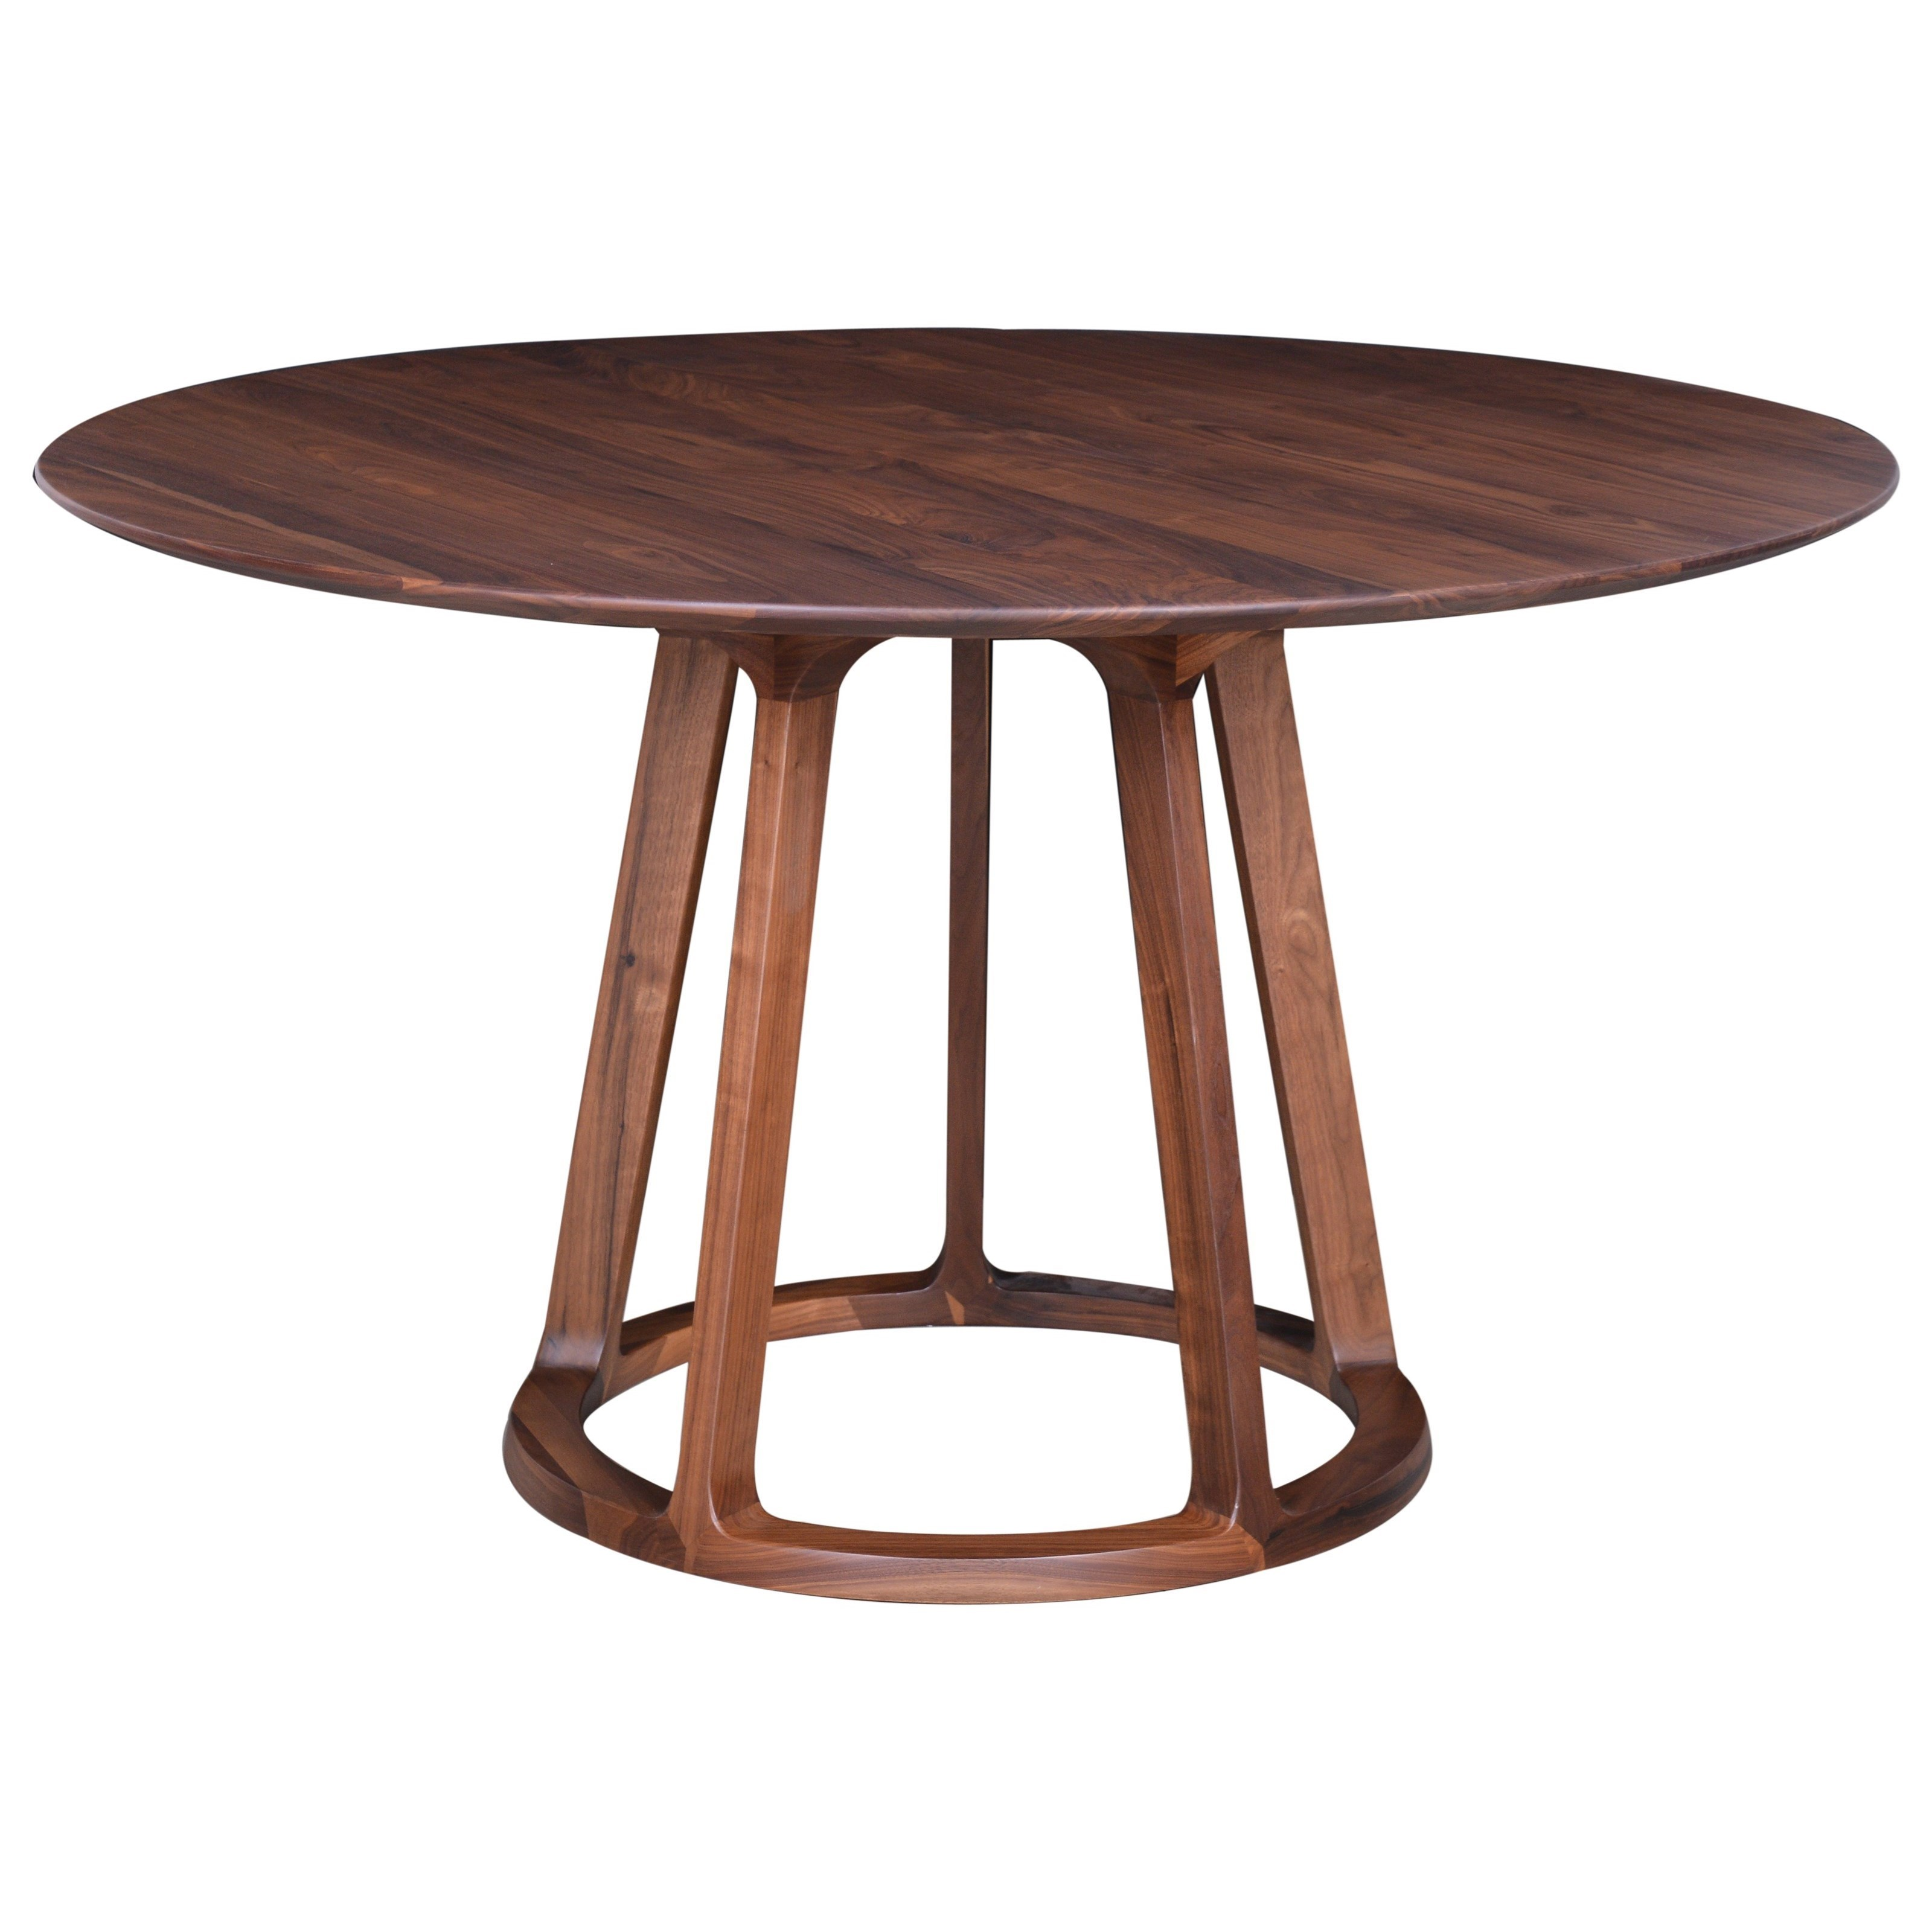 Aldo  Round Dining Table  Walnut   at Williams & Kay